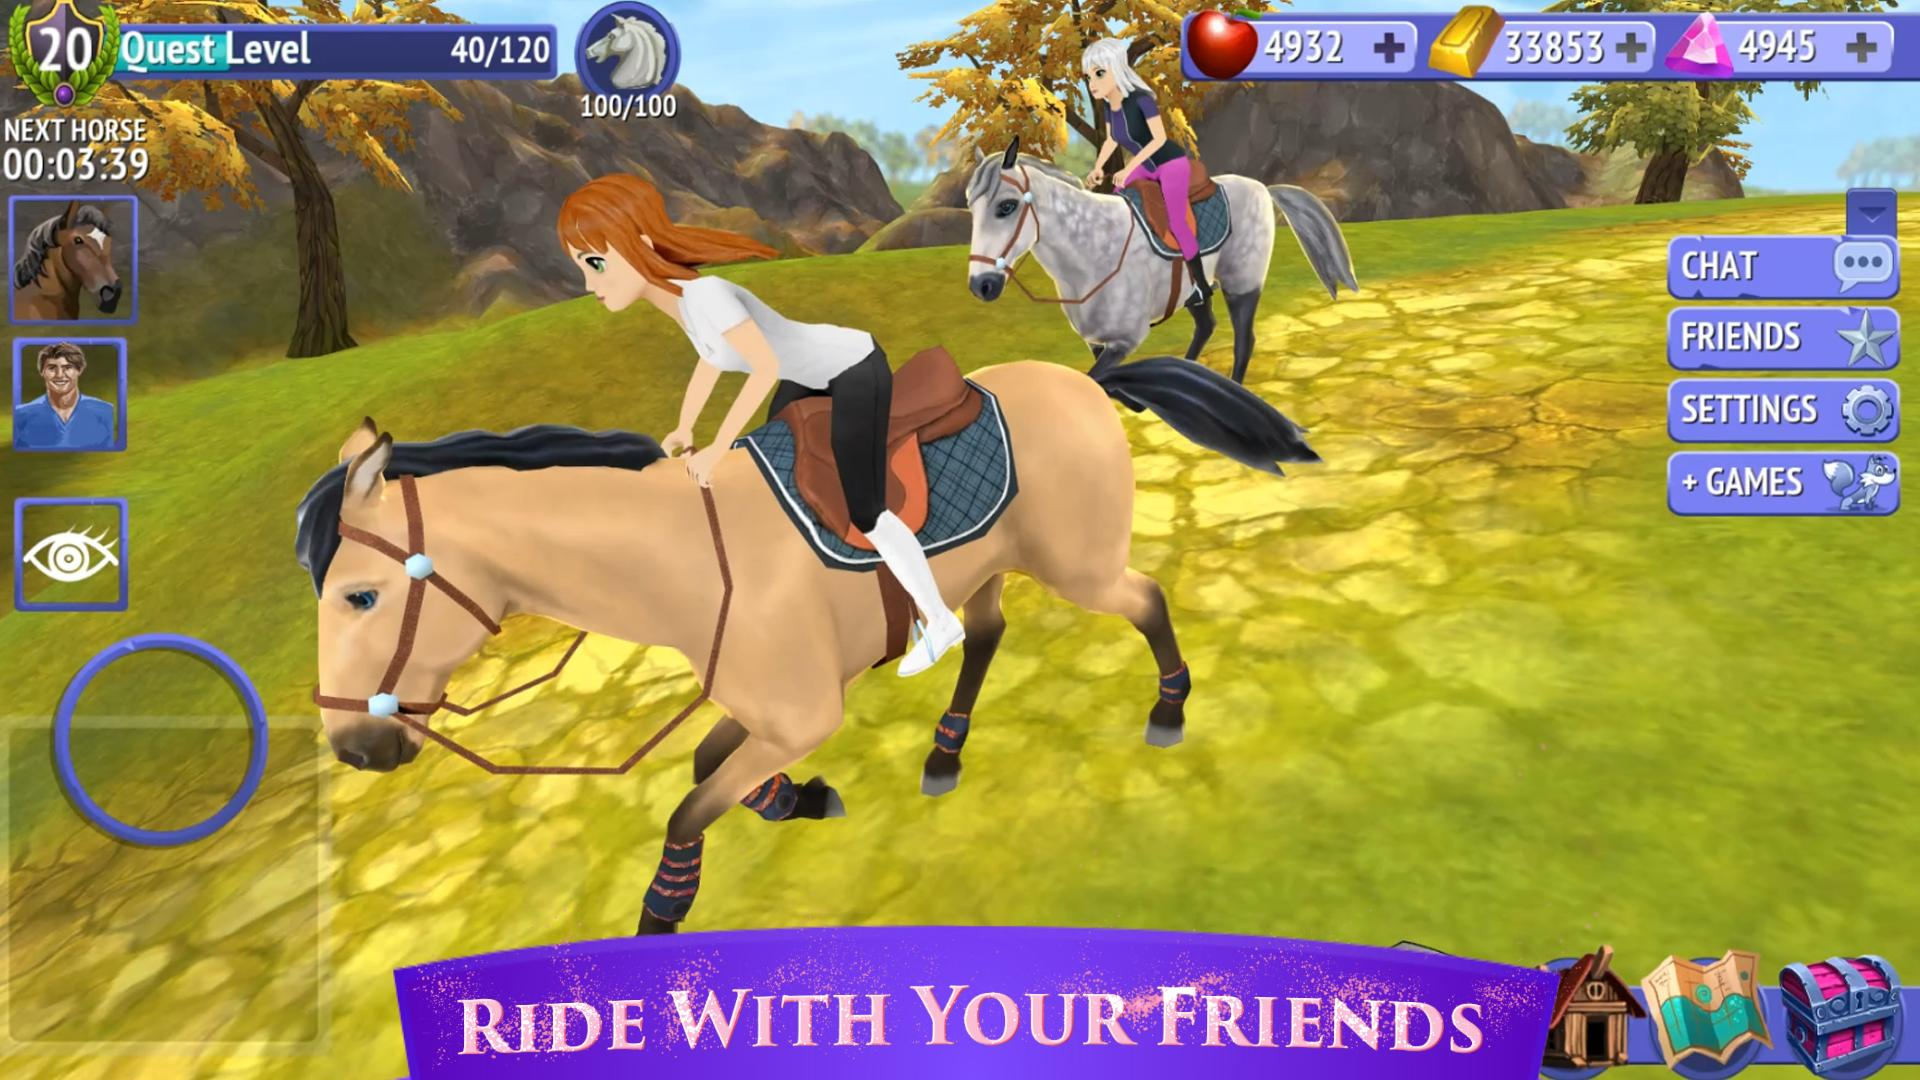 Horse Riding Tales - Ride With Friends 780 Screenshot 12